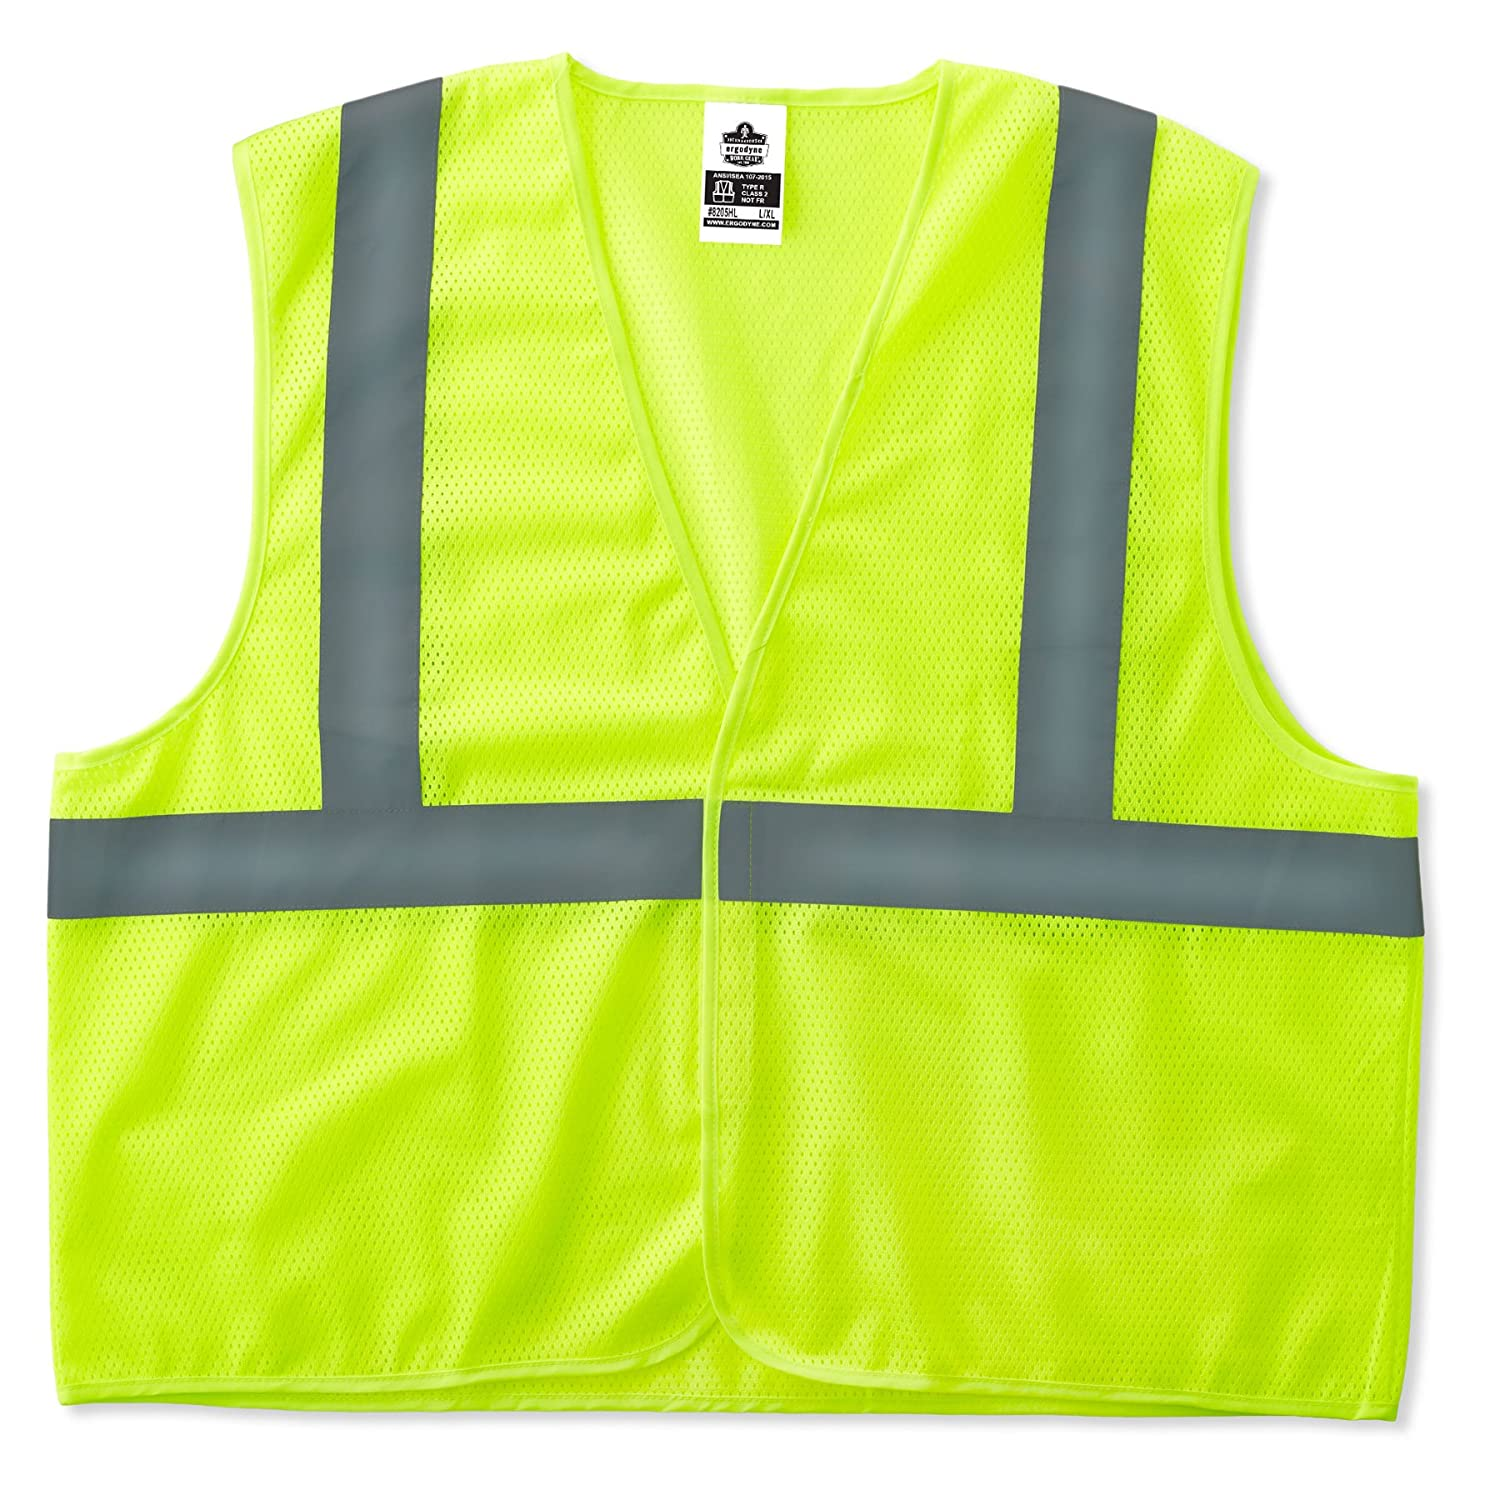 GloWear 8205Z ANSI Economy High Visibility Orange Reflective Safety Vest, Zipper Closure, 2XL/3XL Ergodyne